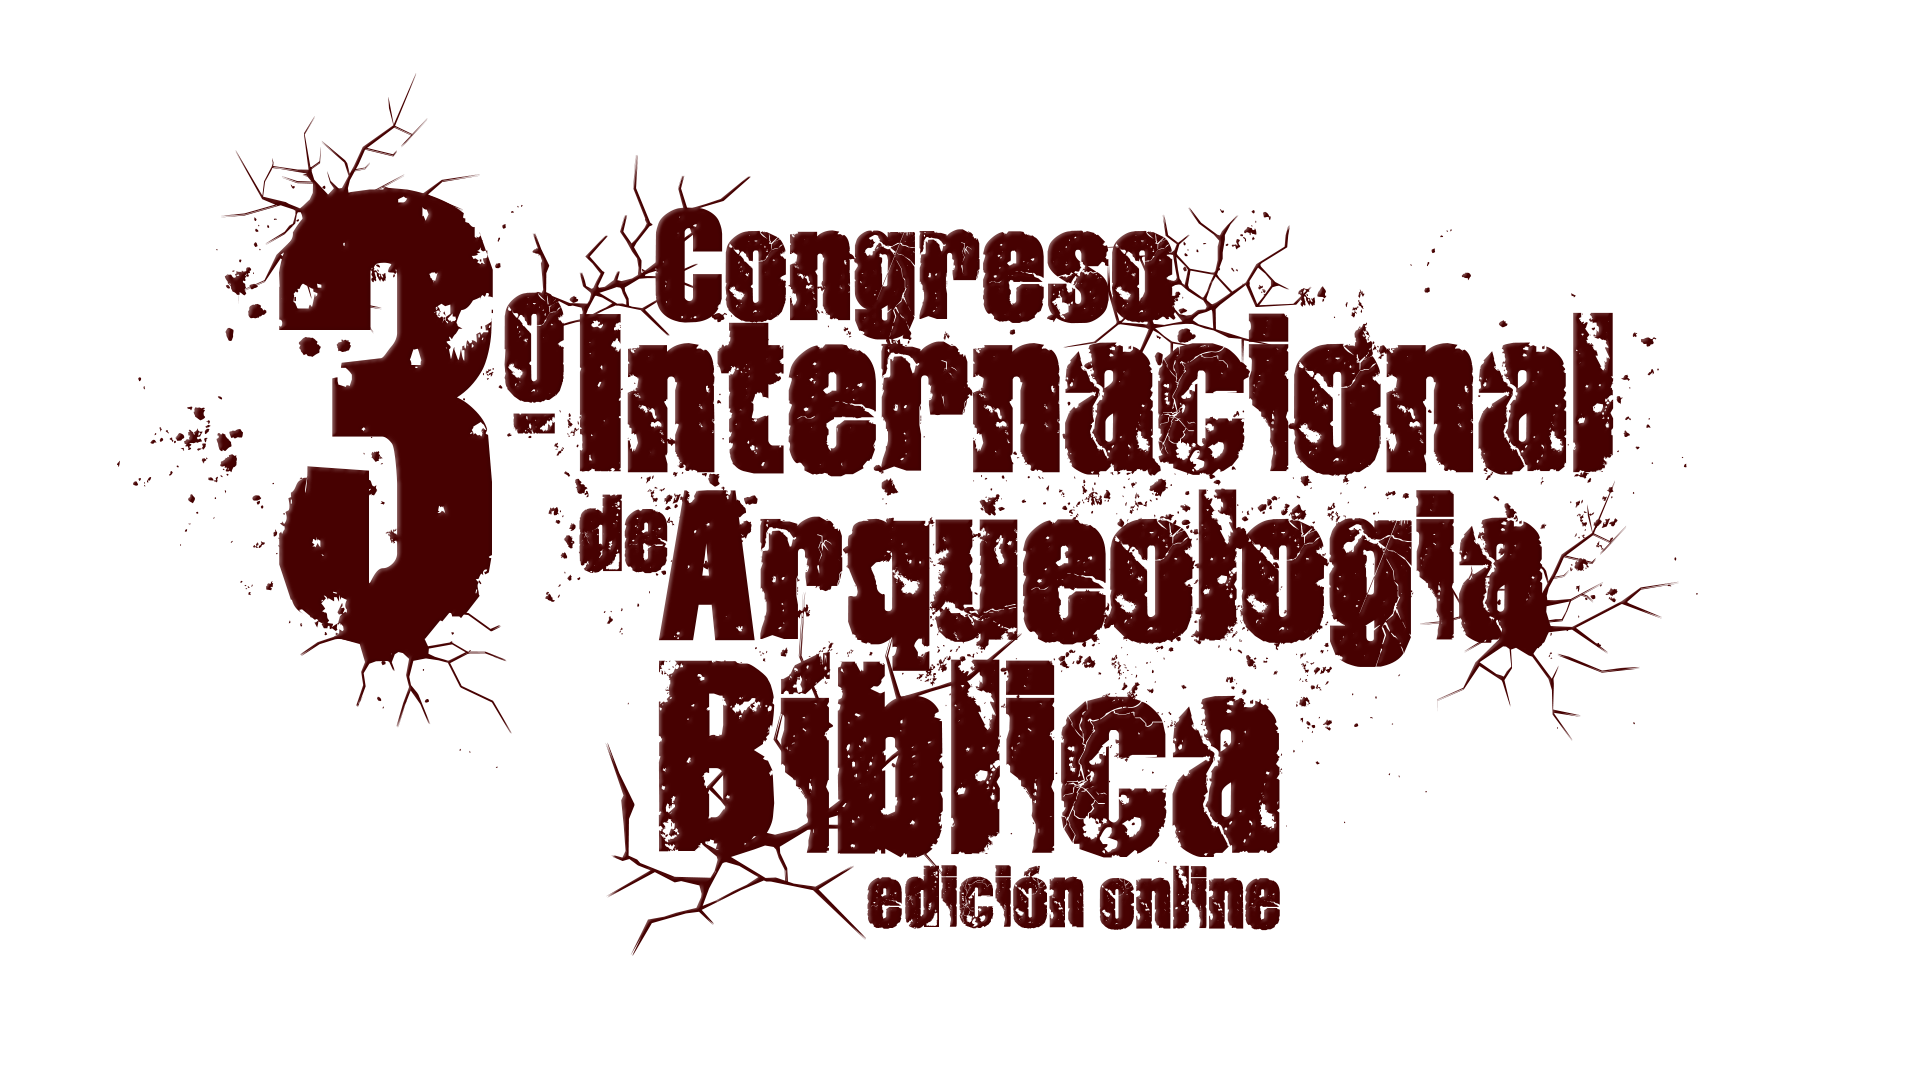 International Congress on Biblical Archaeology